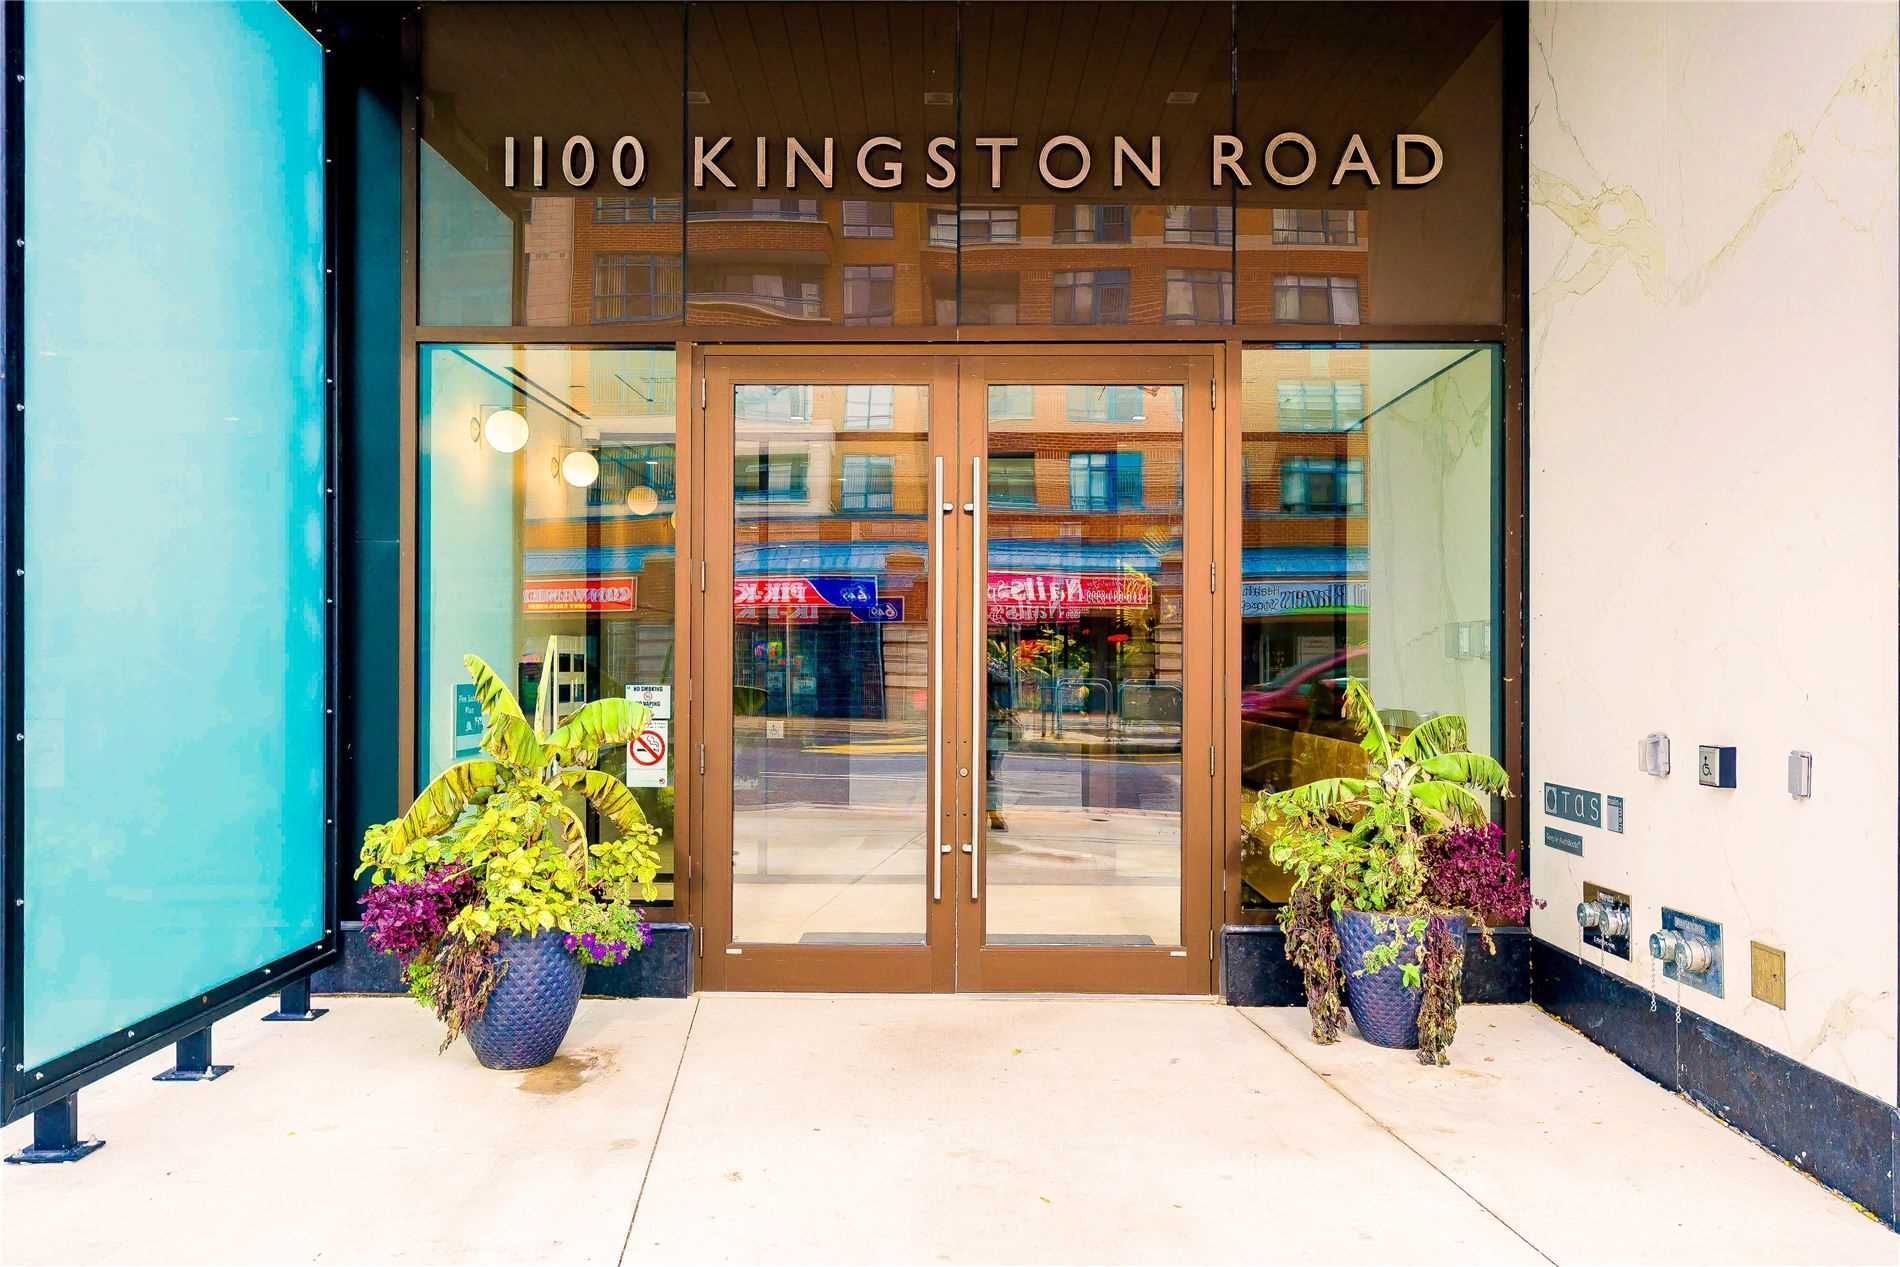 Main Photo: 412 1100 Kingston Road in Toronto: Birchcliffe-Cliffside Condo for sale (Toronto E06)  : MLS®# E5089301